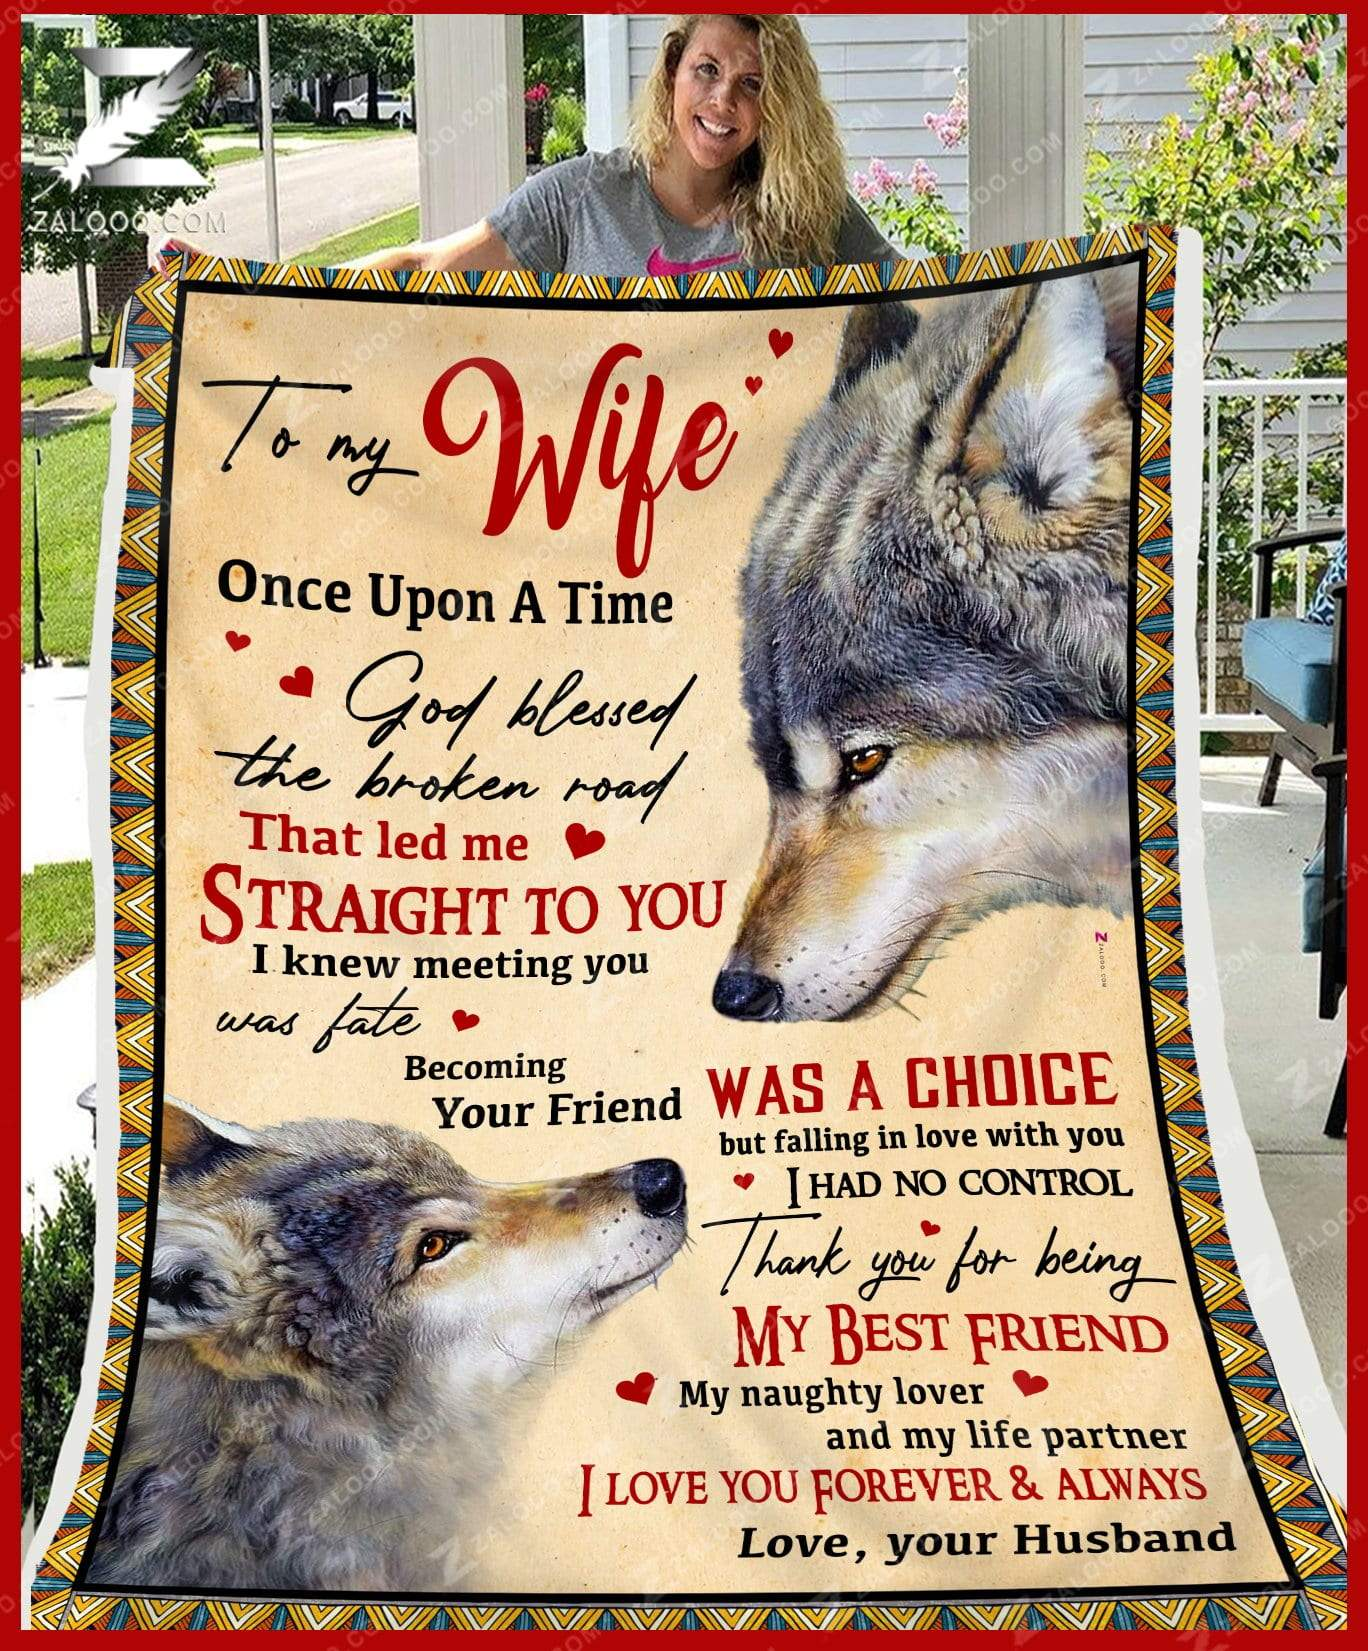 Custom To My Wife - Wedding Anniversary - WOLF - God Blessed The Broken Road Quilt Blanket EP2550